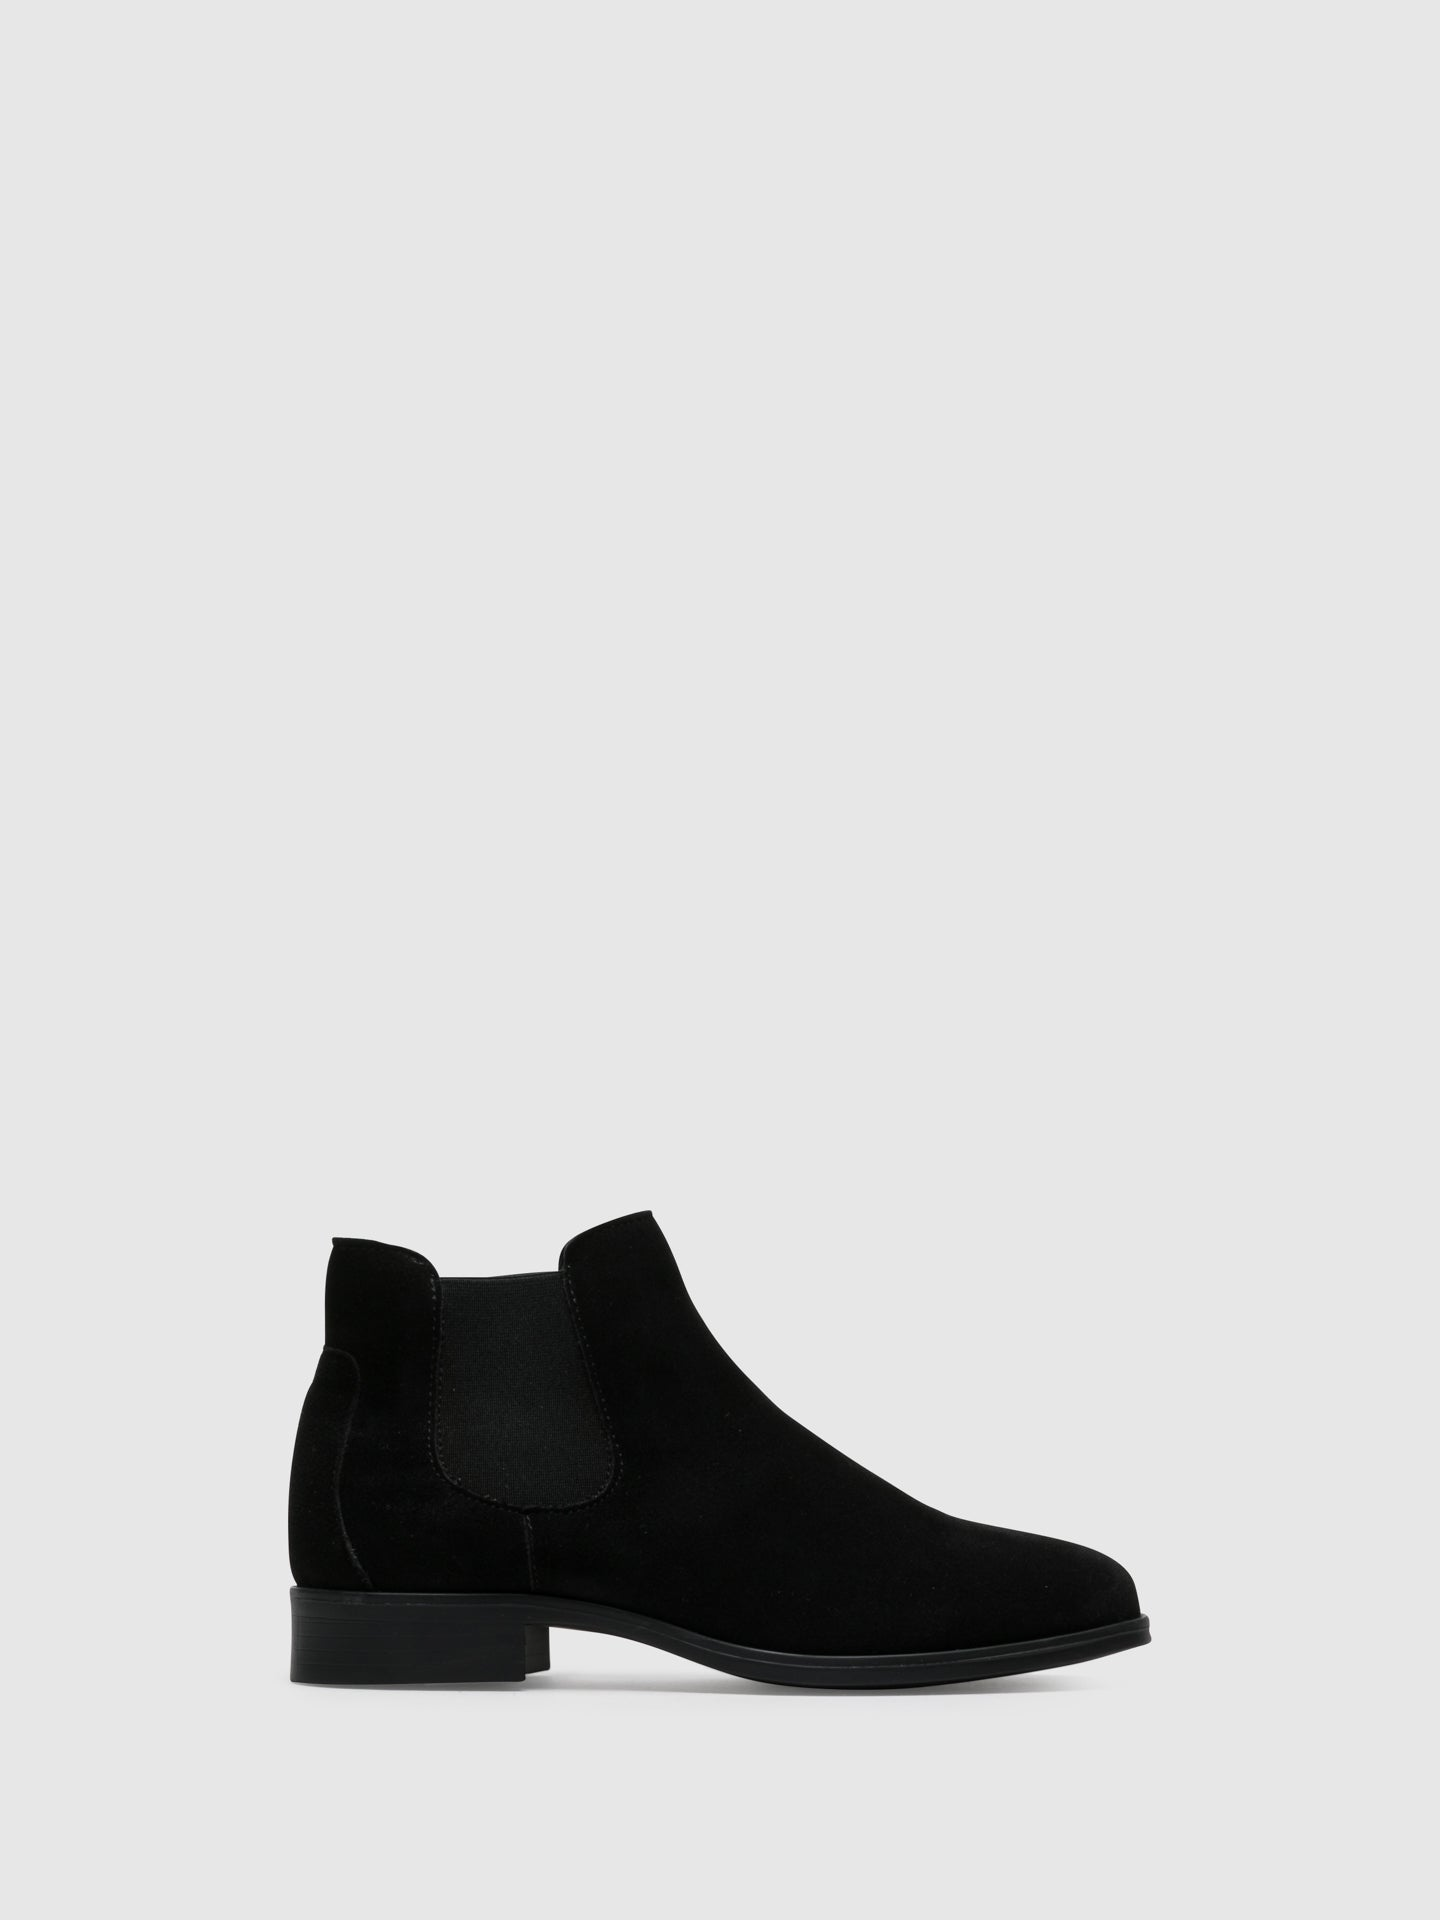 Foreva Black Suede Elasticated Ankle Boots